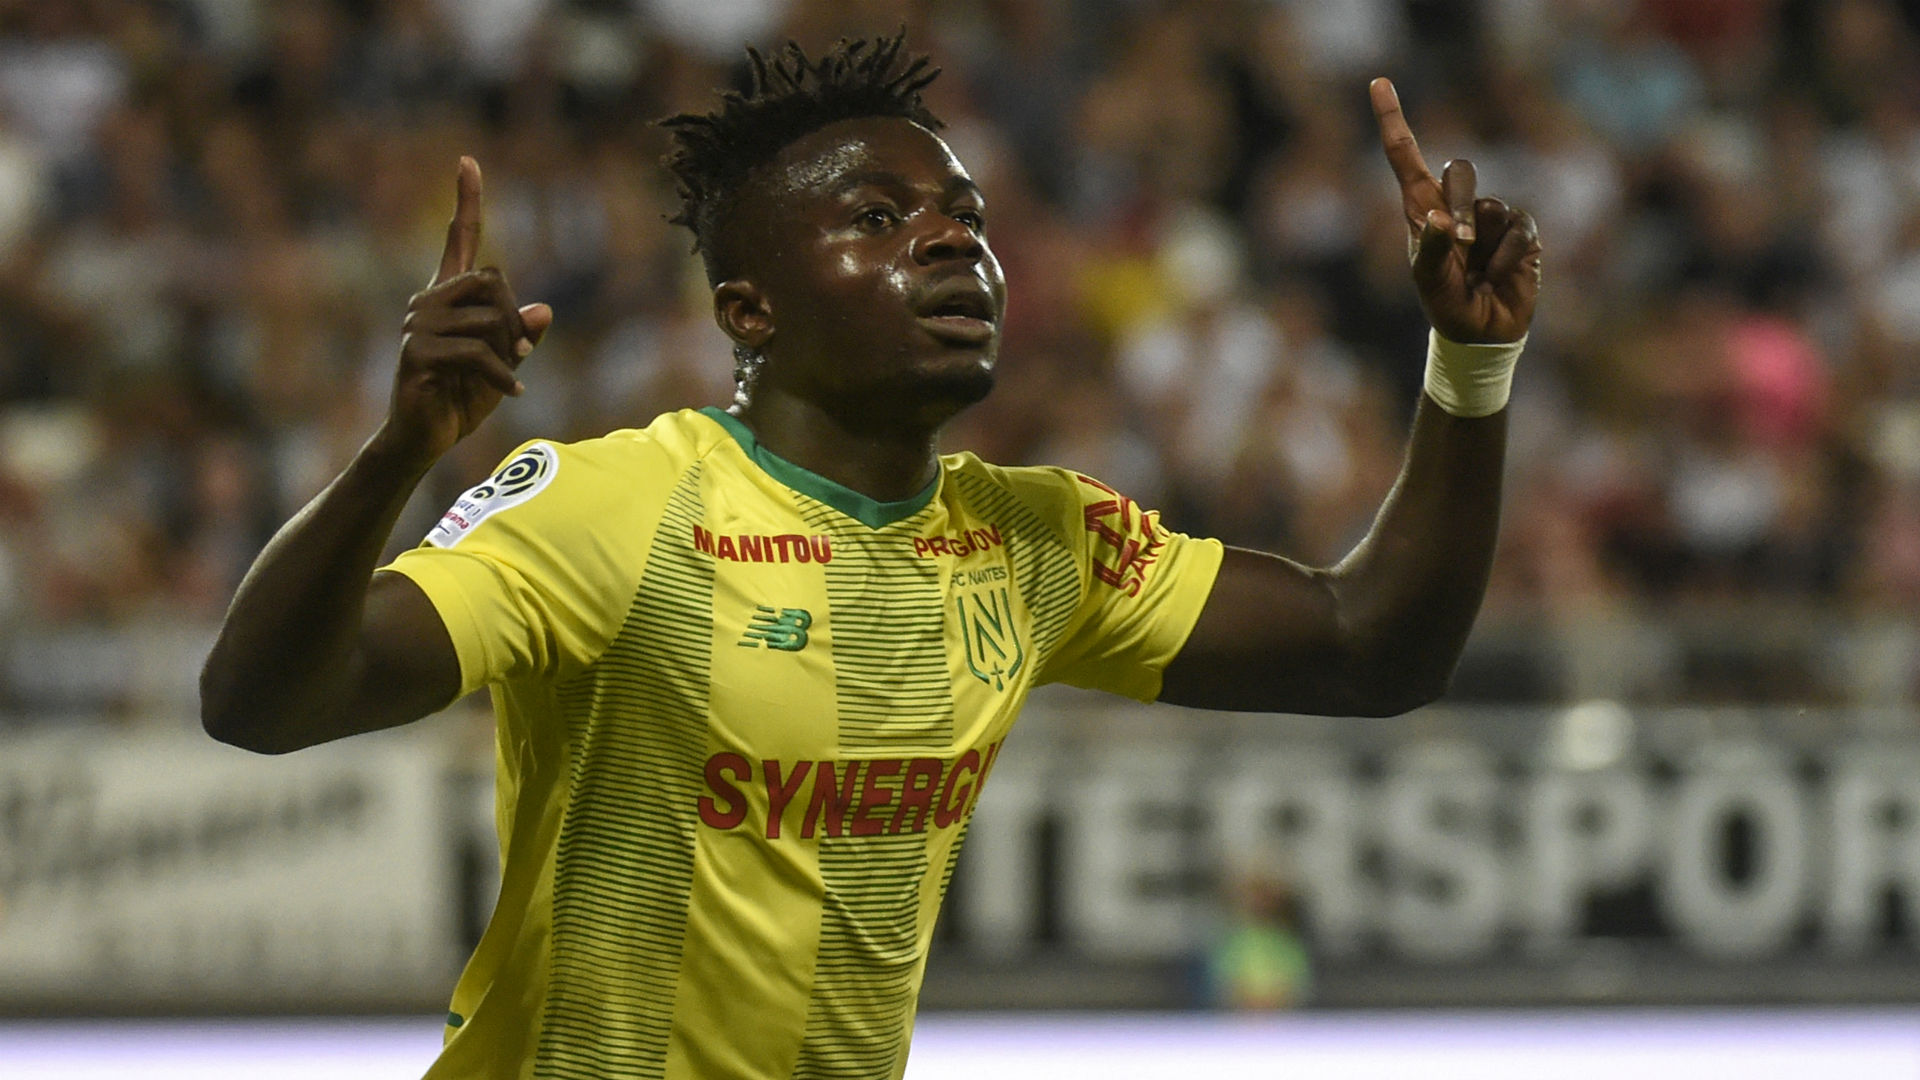 'I think it is the best decision' – Nantes' Simon lauds decision to end Ligue 1 campaign early